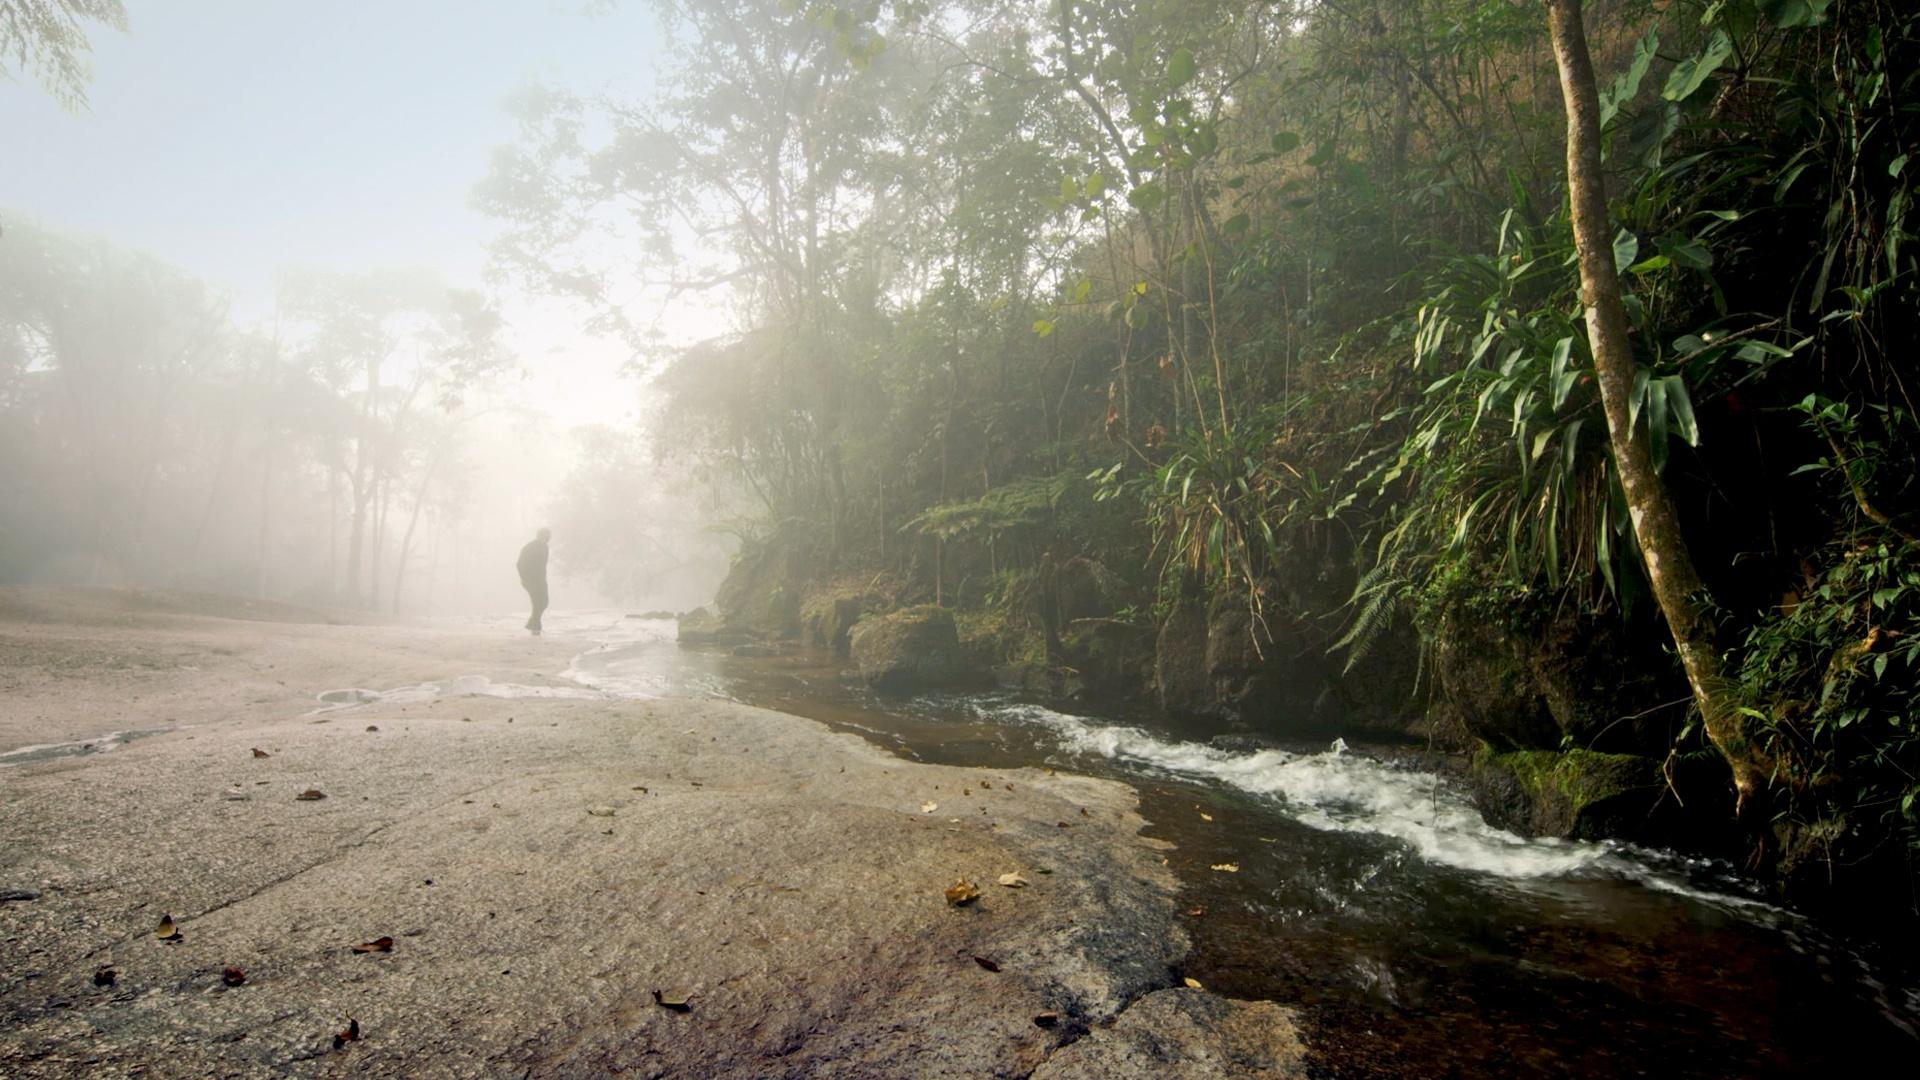 Antonio Nobre has dedicated his career to tracking the water molecule on its journey through the greatest forest on earth, the Amazon.